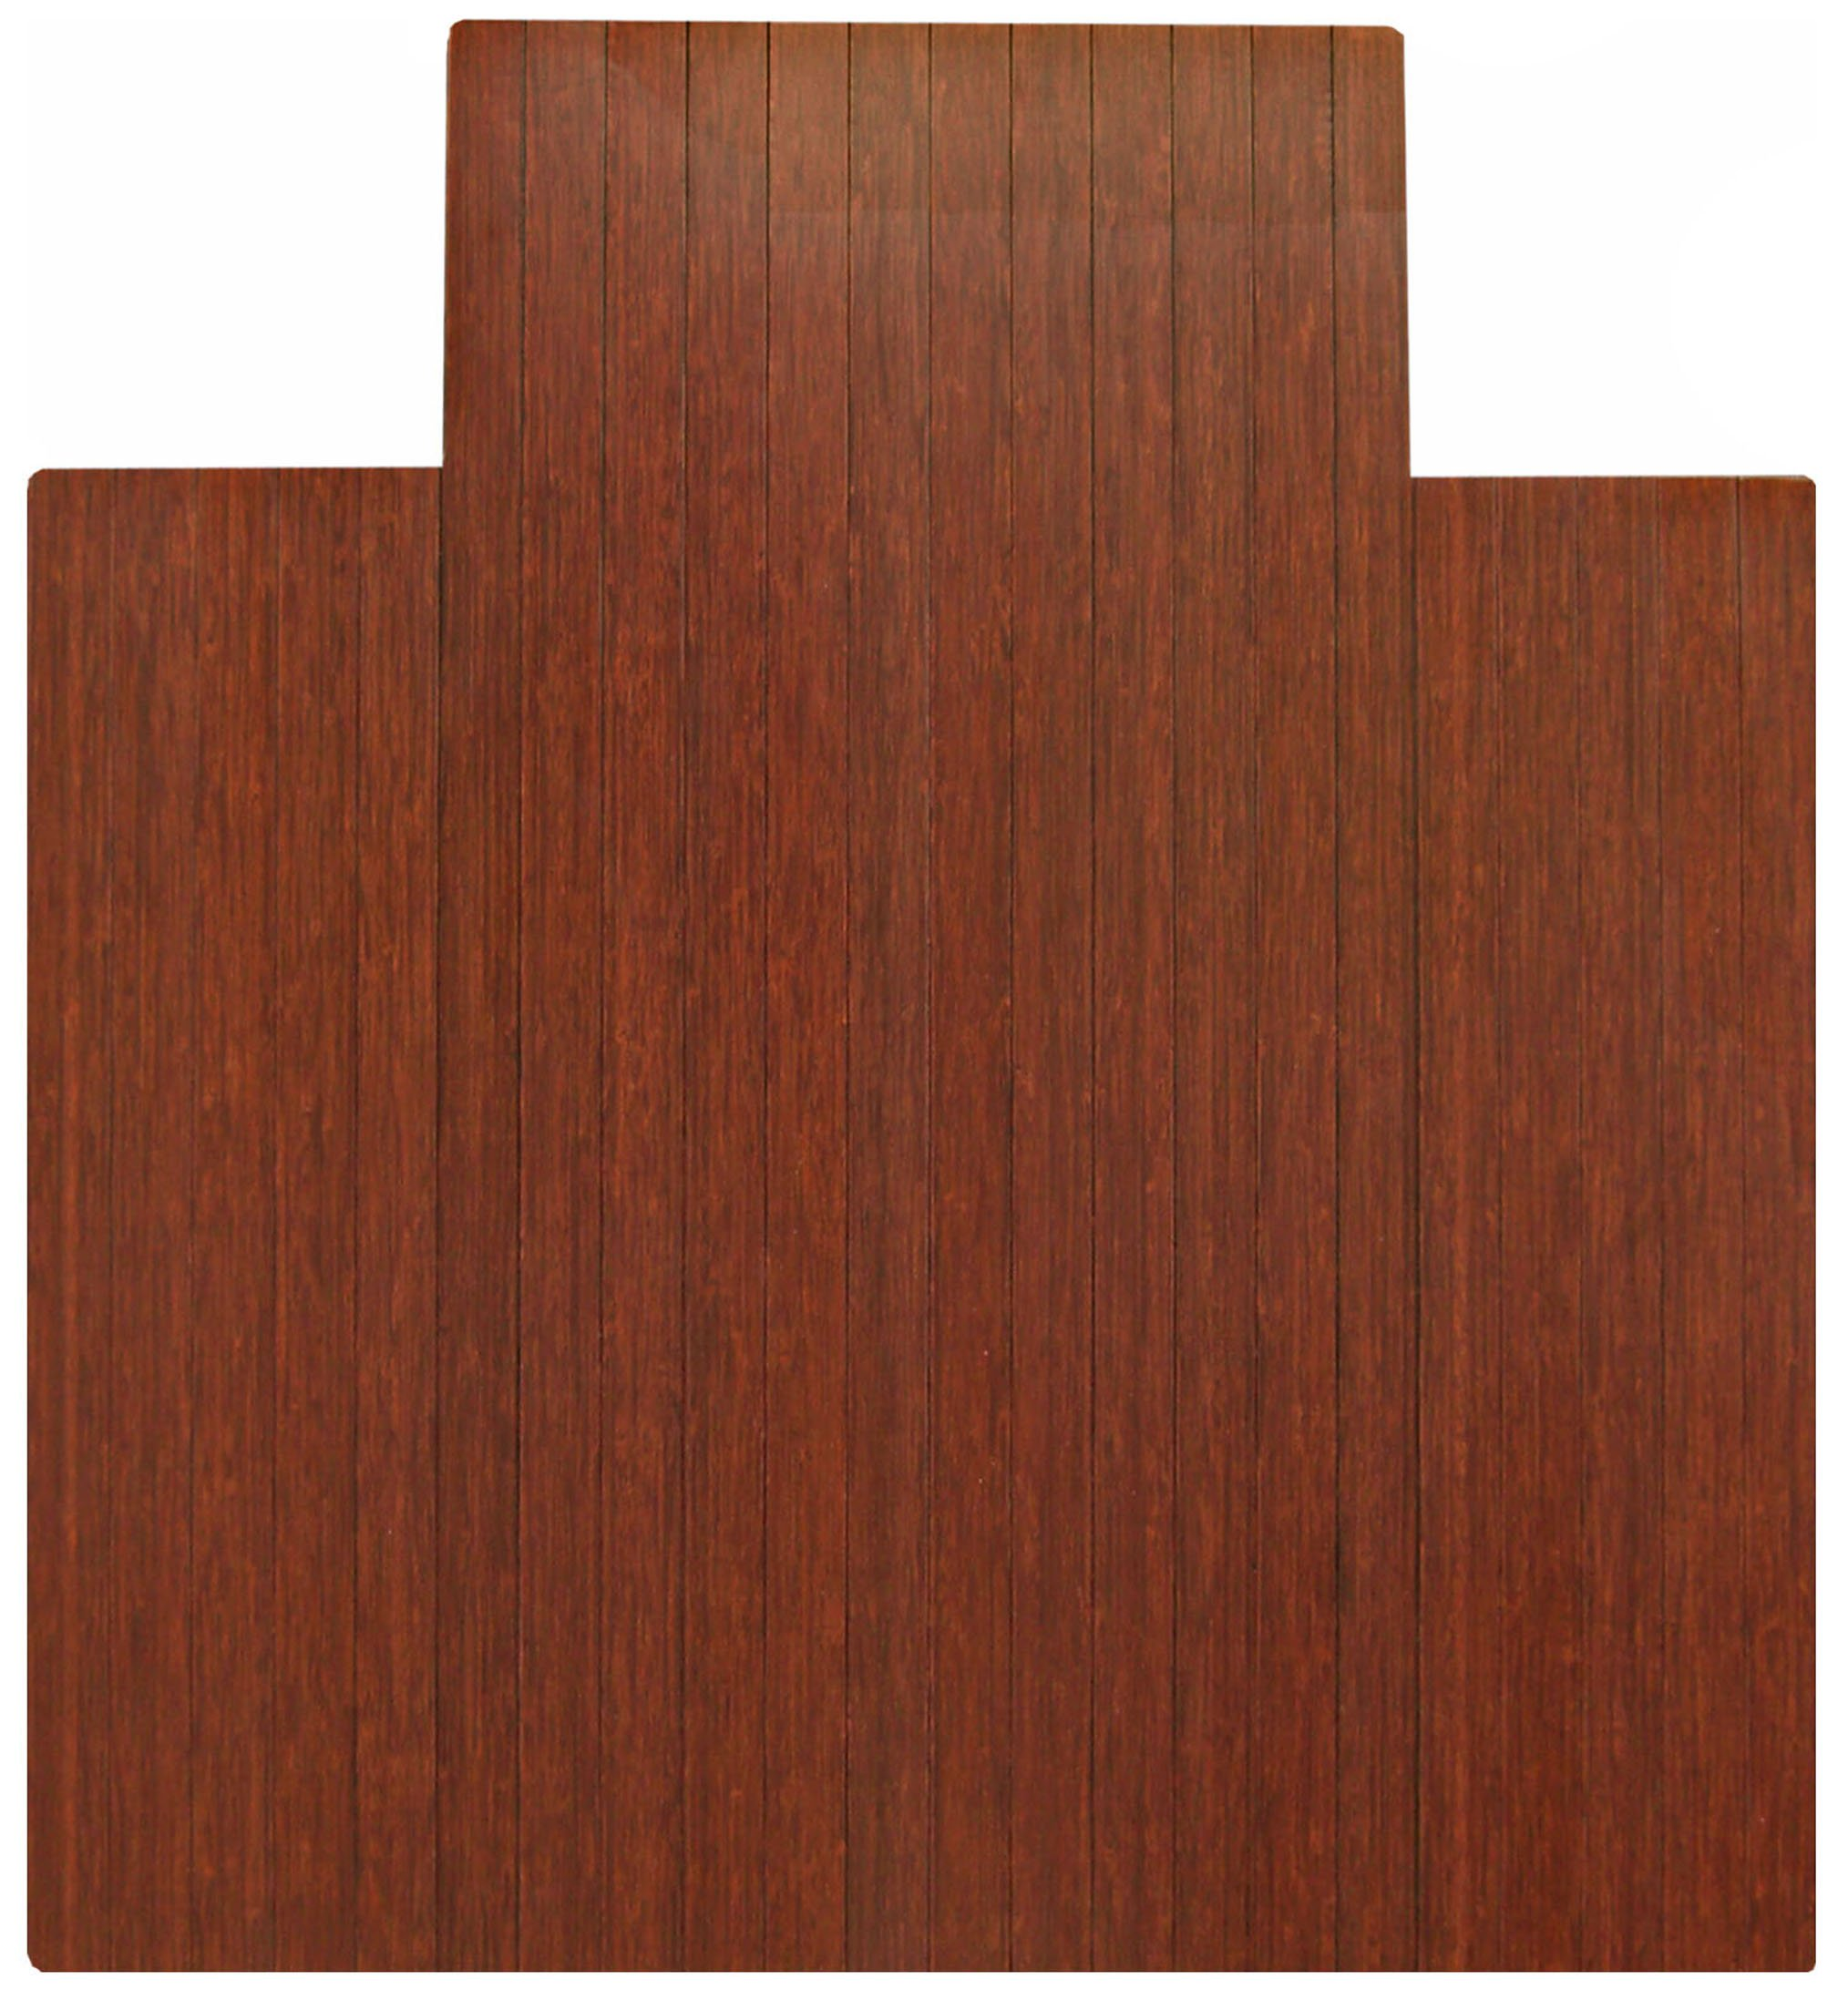 Anji Mountain AMB24006 Bamboo Roll-Up Chair Mat with Lip, Dark Cherry, 44 x 52, 5mm Thick